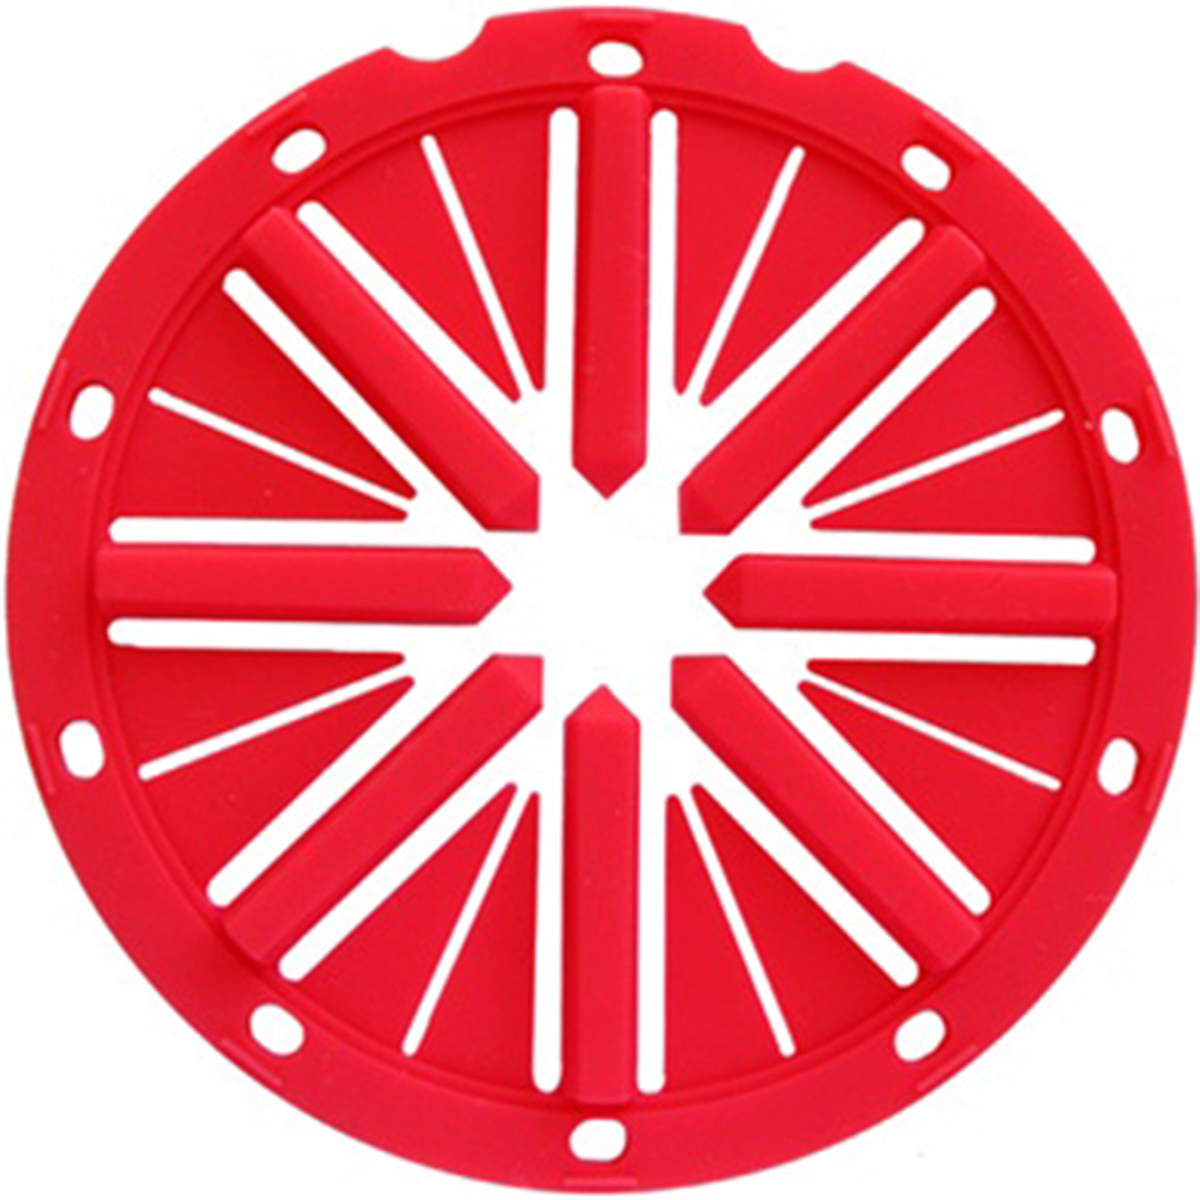 KM Spine Rotor Loader Feed Lid - Red